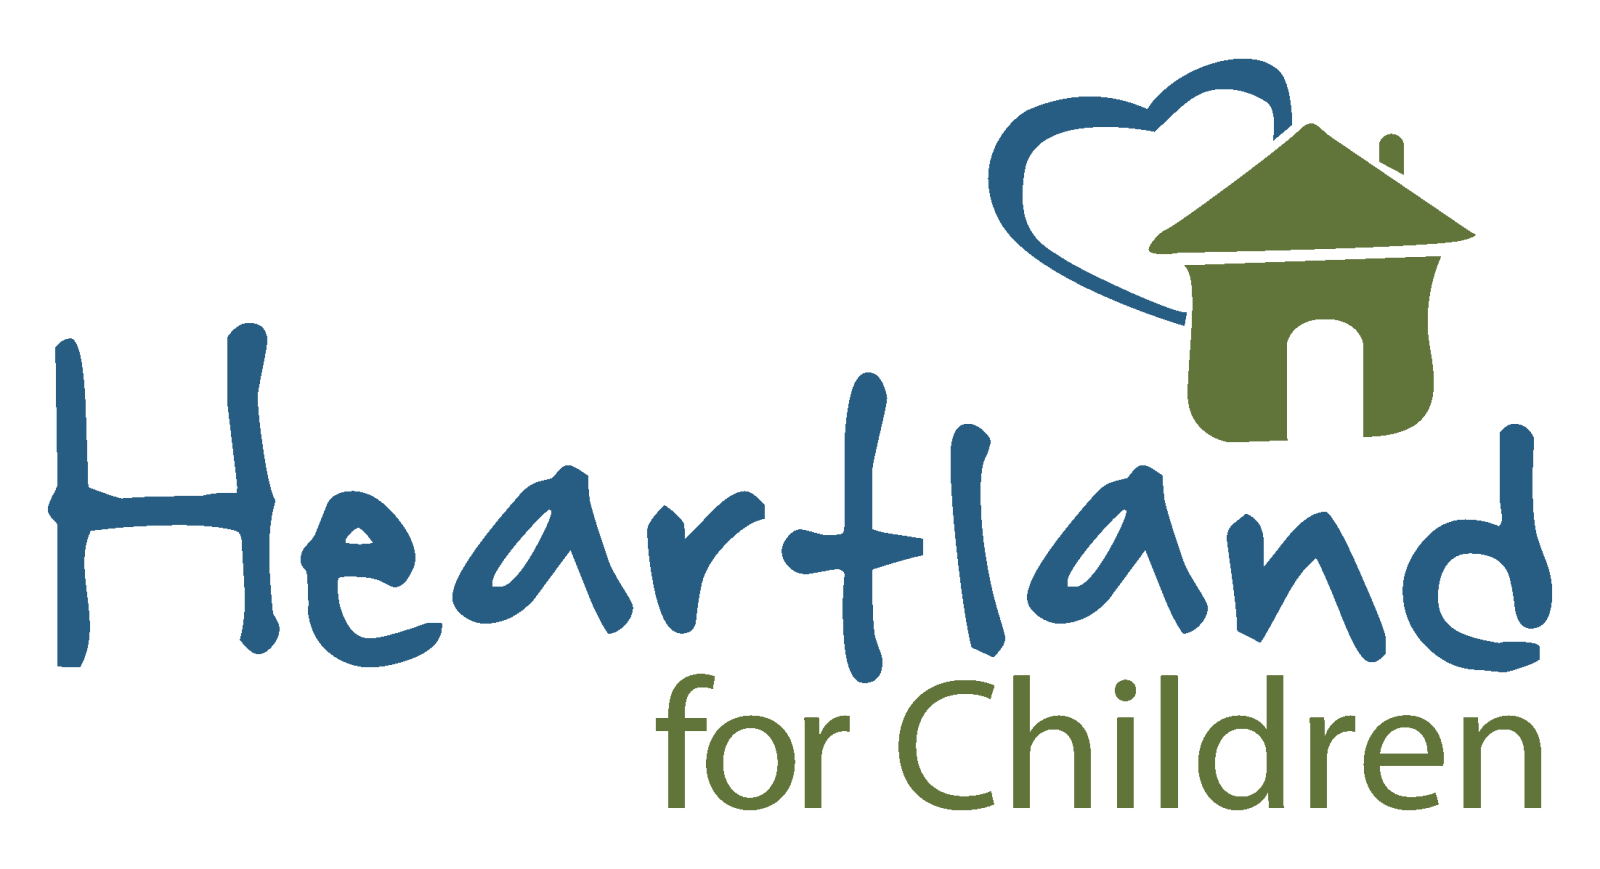 Heartland For Children.png